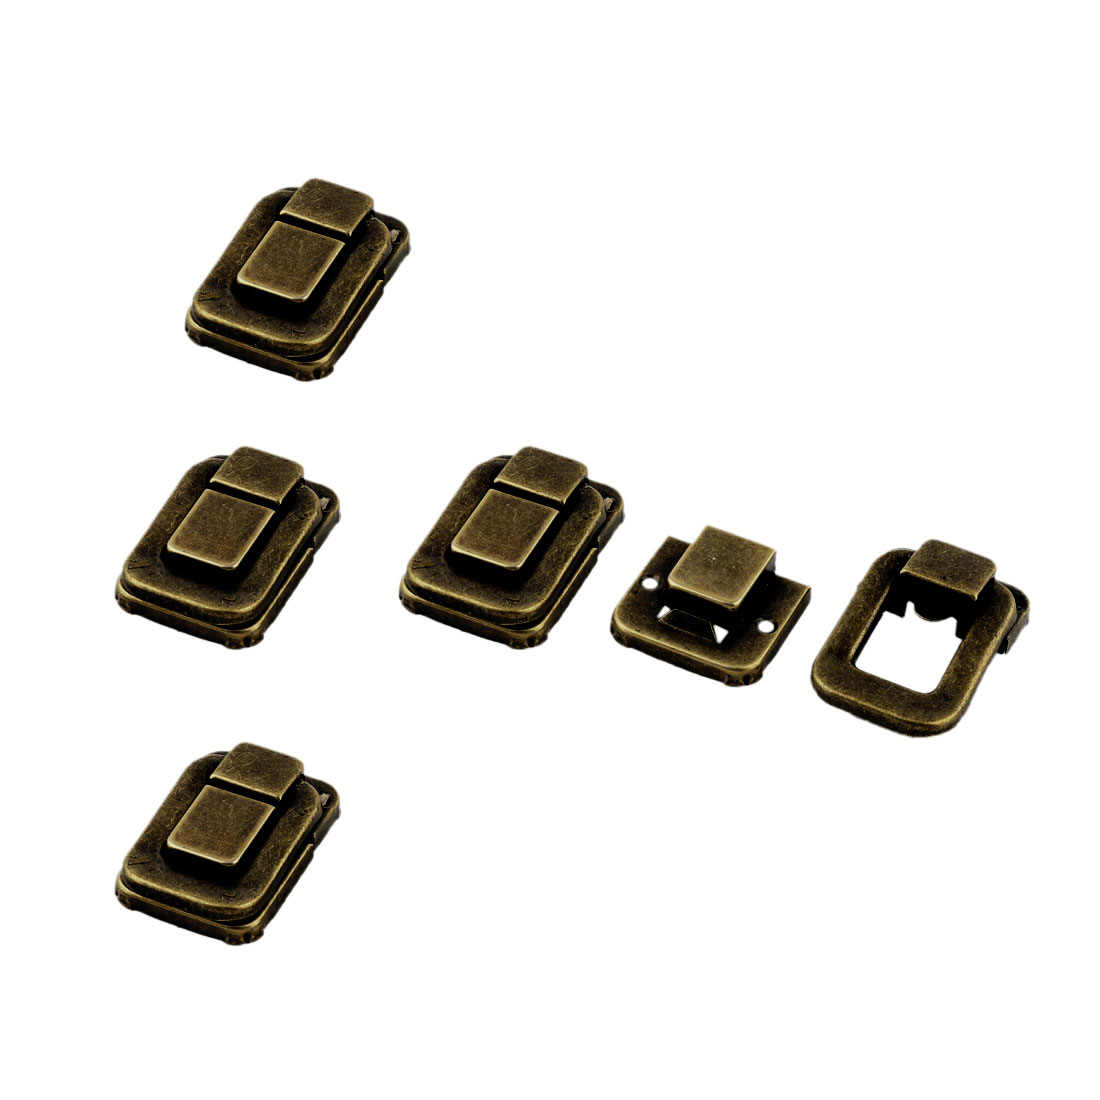 Case Trunk Chest Box Toggle Catch Latch Clip Clasp Brass Tone 33mm x 48mm 5 Sets